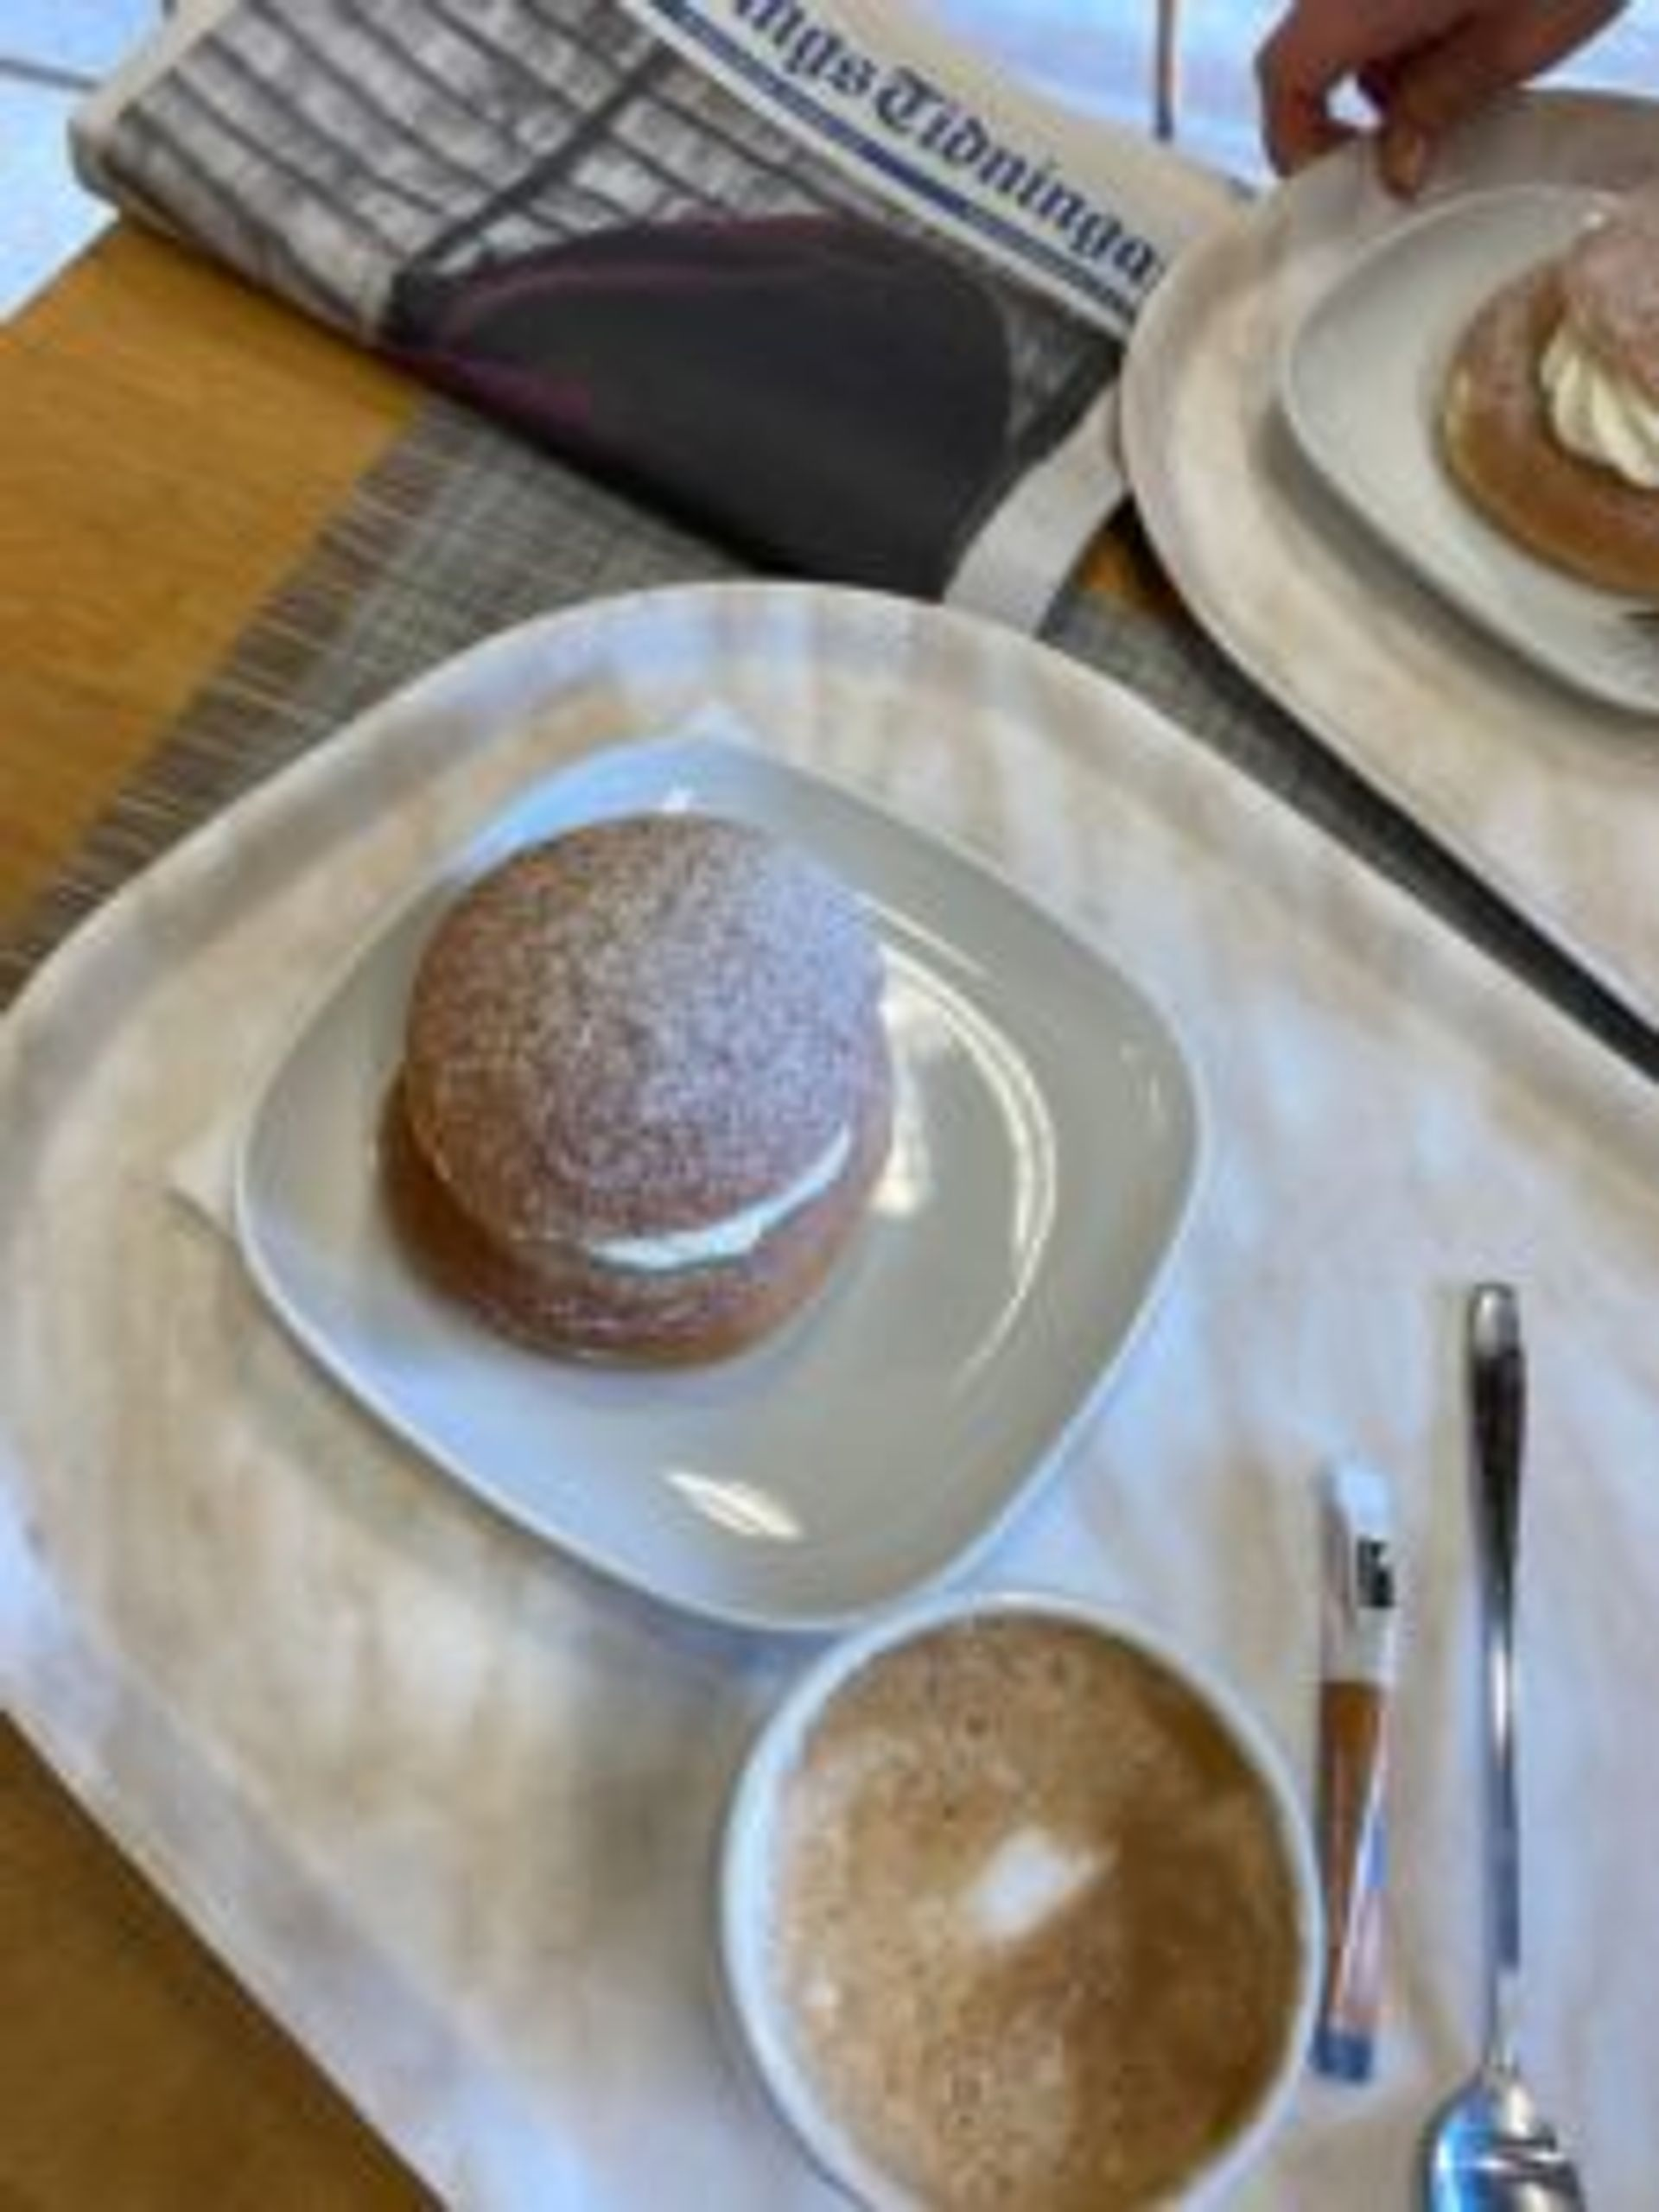 A tray with a cup of coffee and a semla - a traditional Swedish pastry.